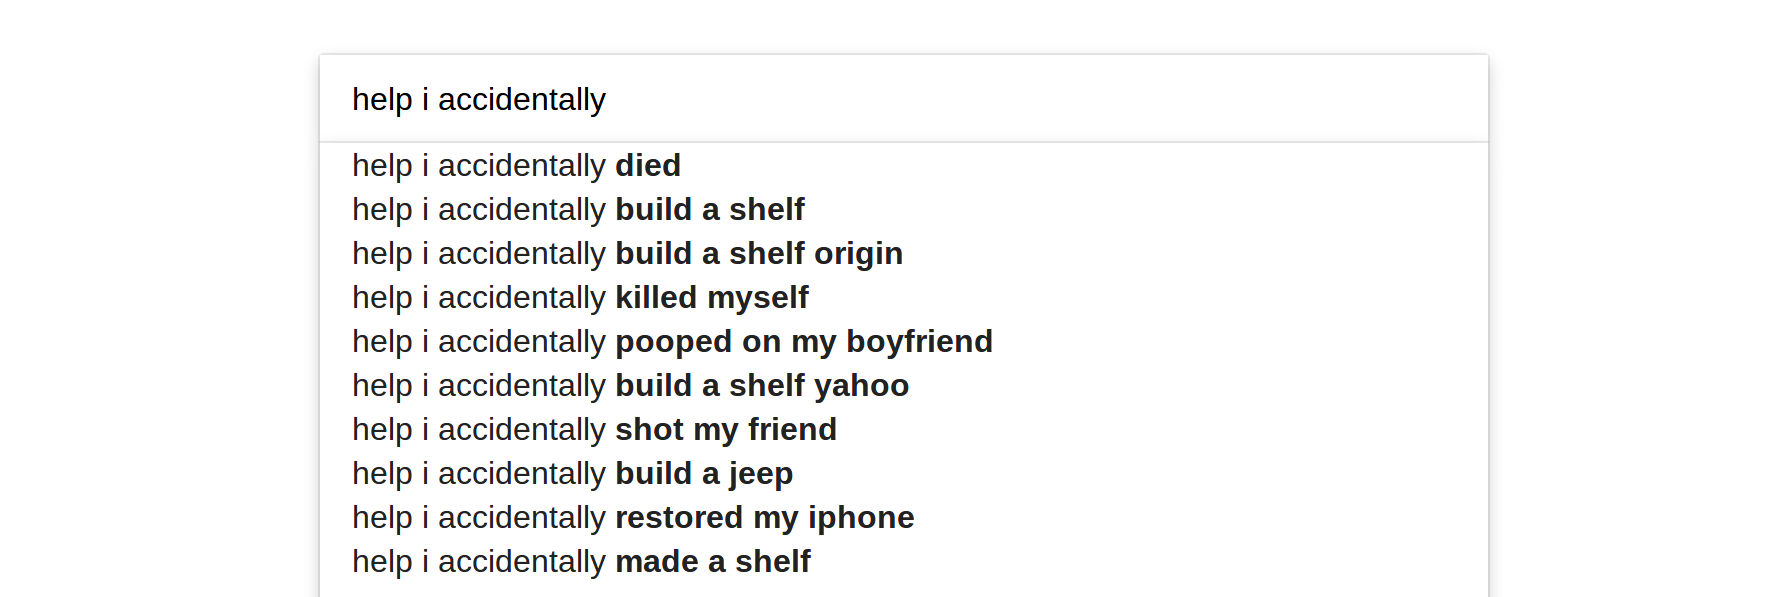 Hilarious autocomplete